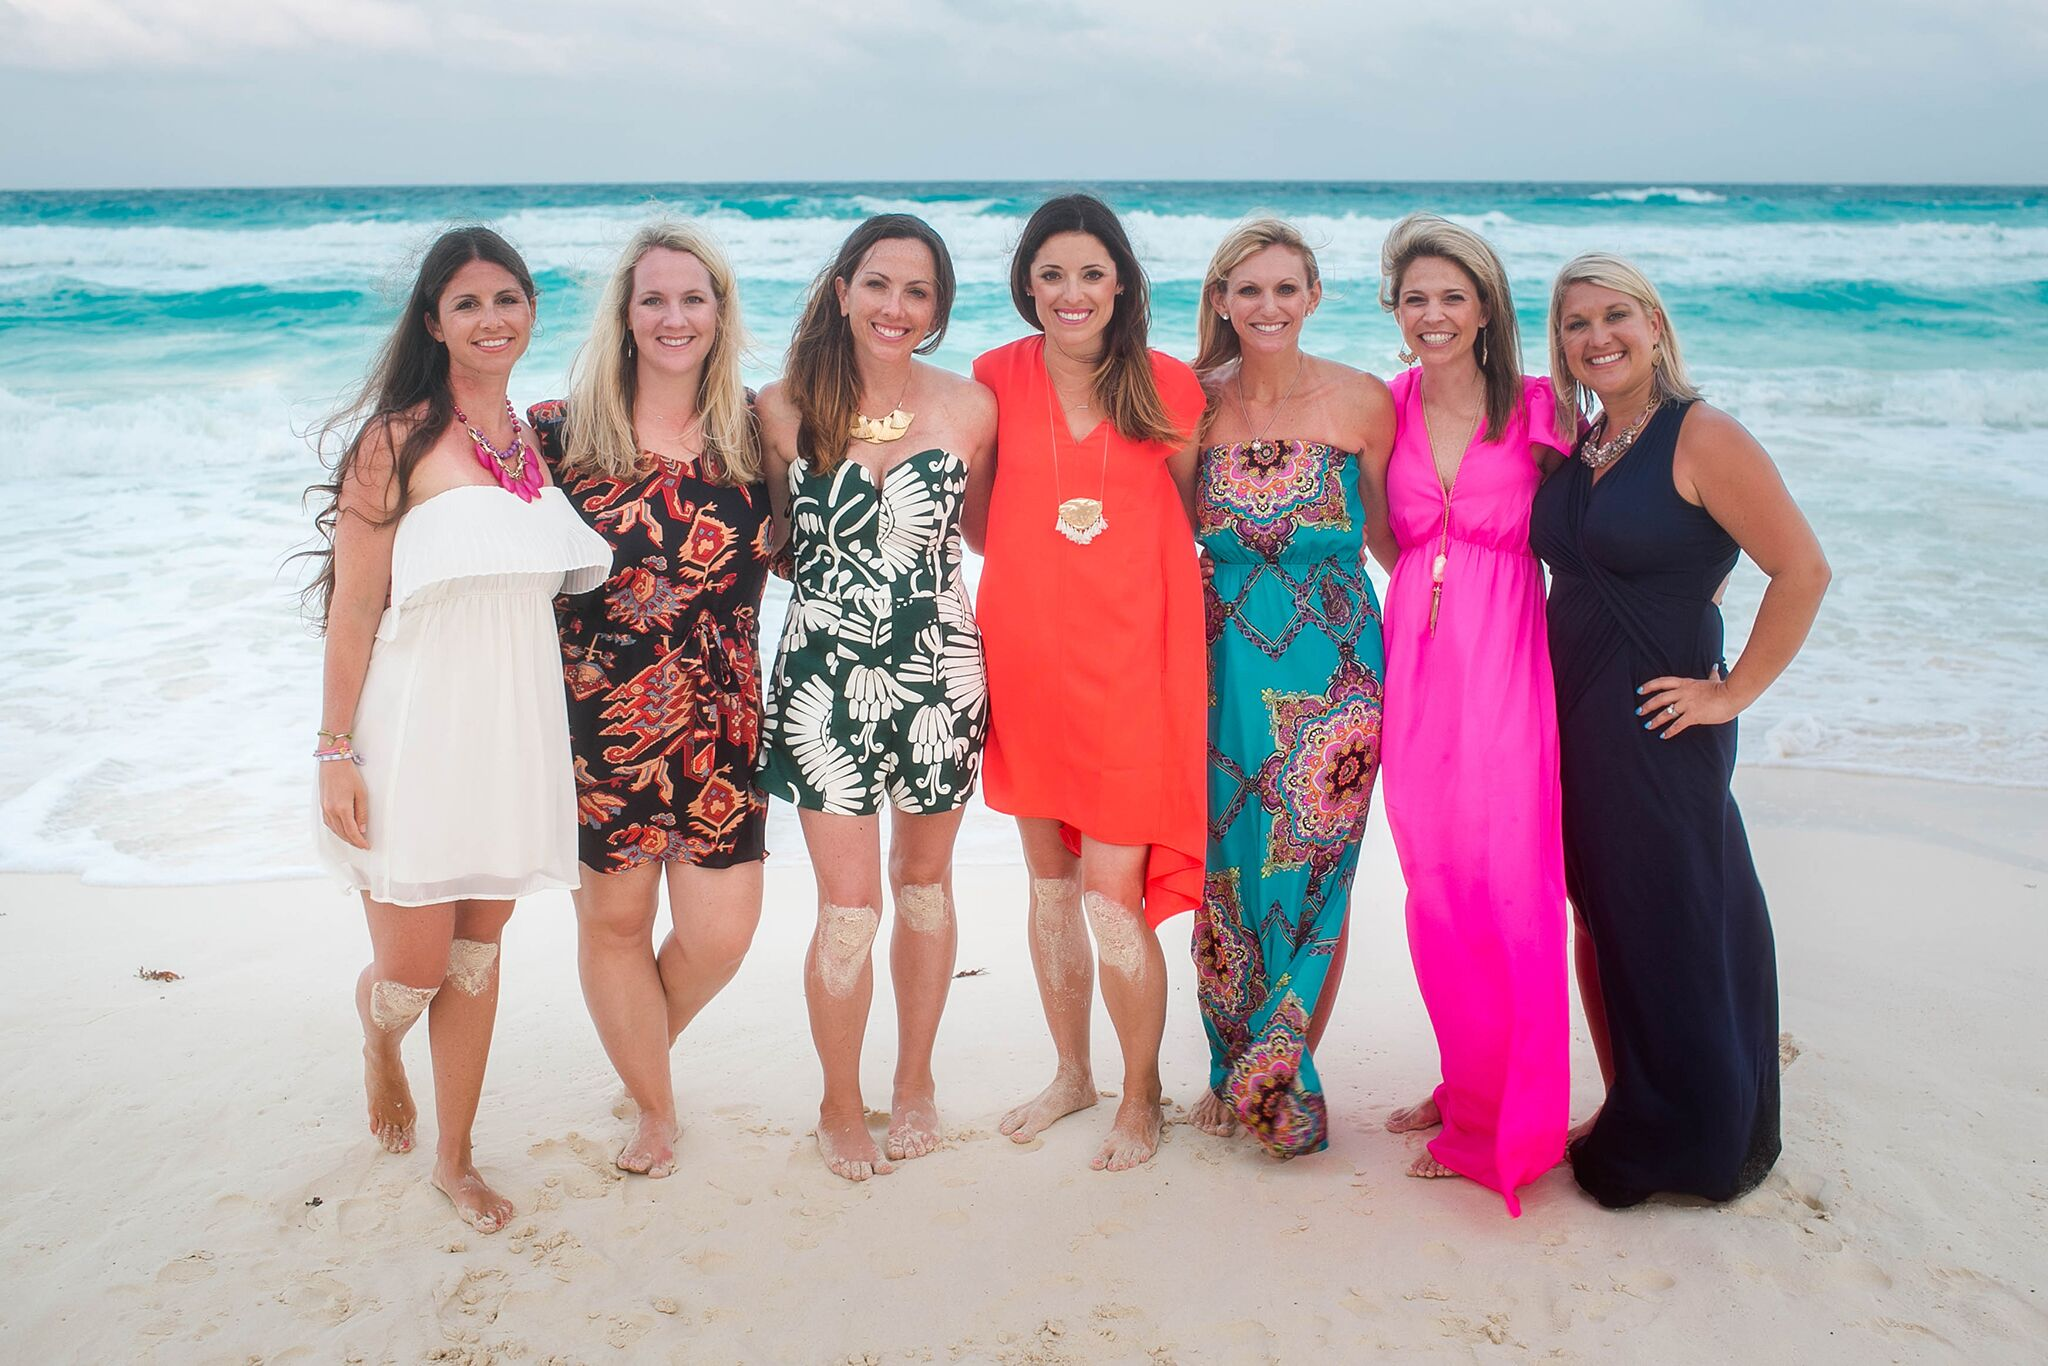 Emily enjoyed a trip to Mexico with some of her Rodan + Fields teammates.